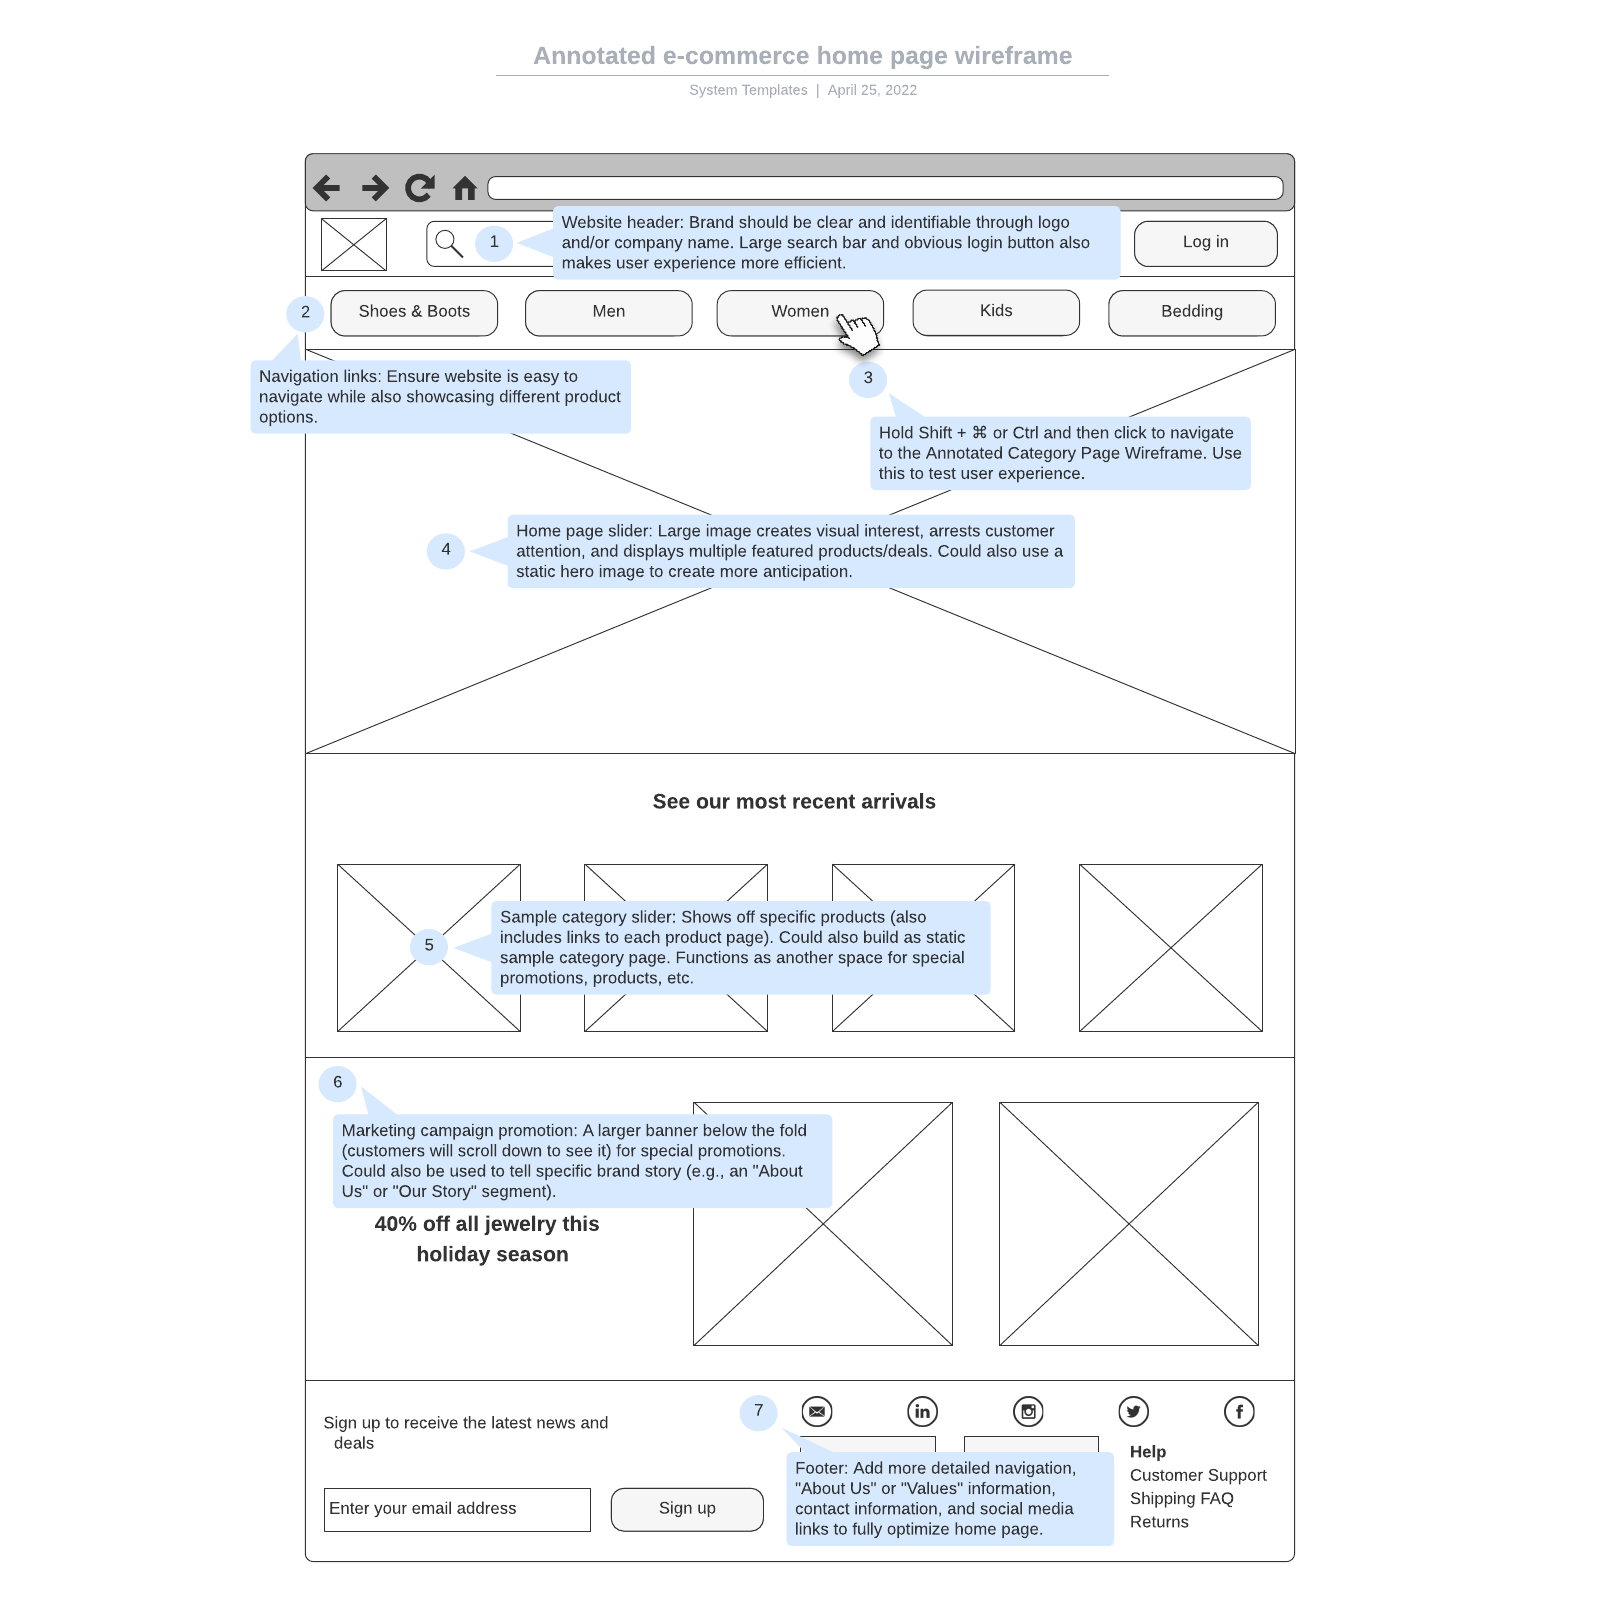 Annotated e-commerce home page wireframe